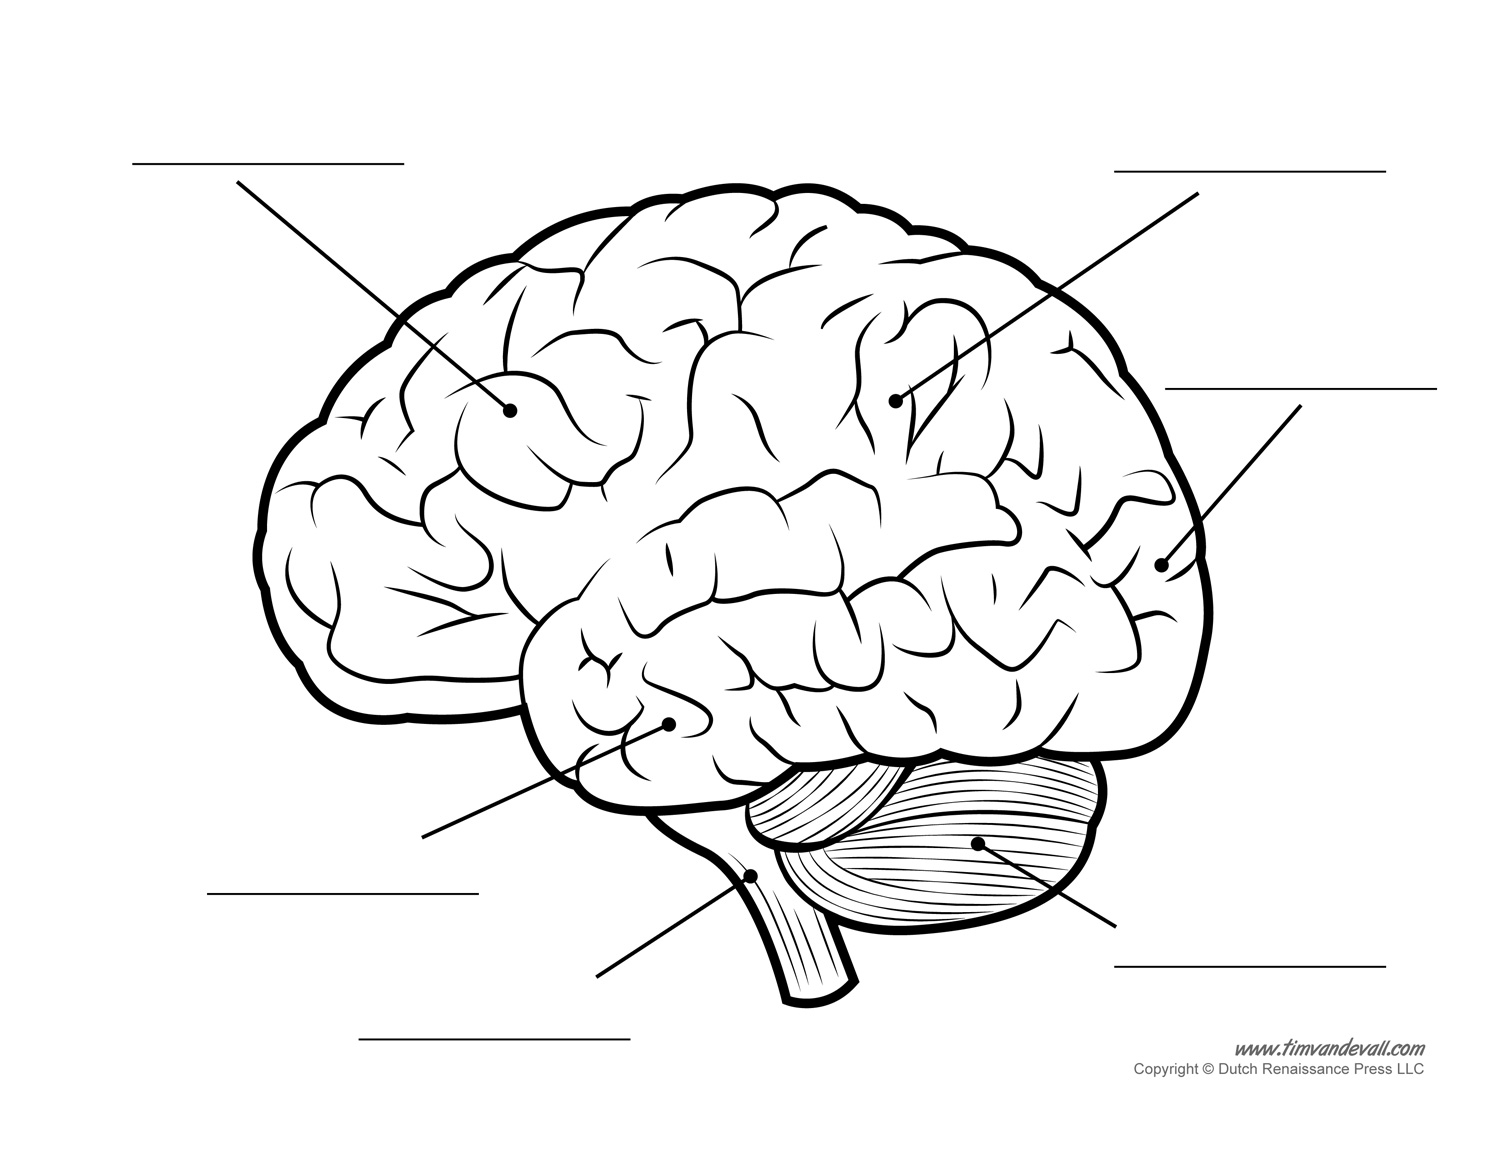 Brain Outline Drawing At Getdrawings Free For Personal Use